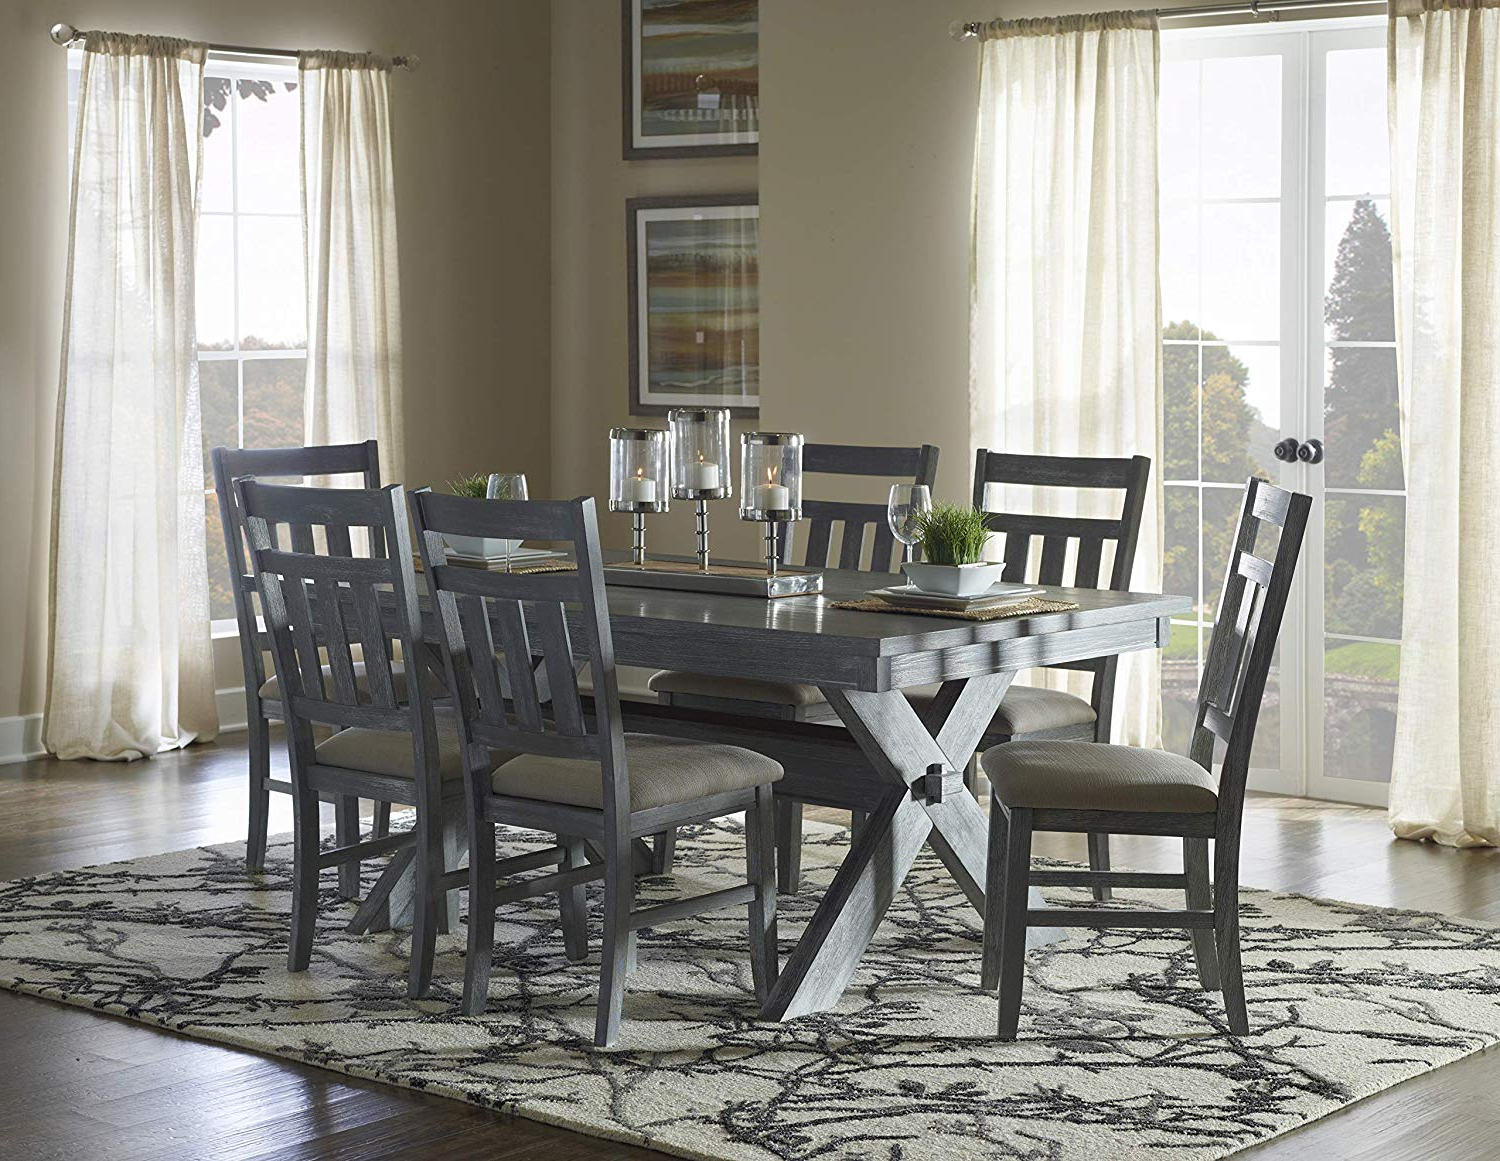 Powell 457 417m2 Turino Dining Set, Grey Oak Finish Intended For Most Recently Released Evellen 5 Piece Solid Wood Dining Sets (set Of 5) (View 15 of 20)